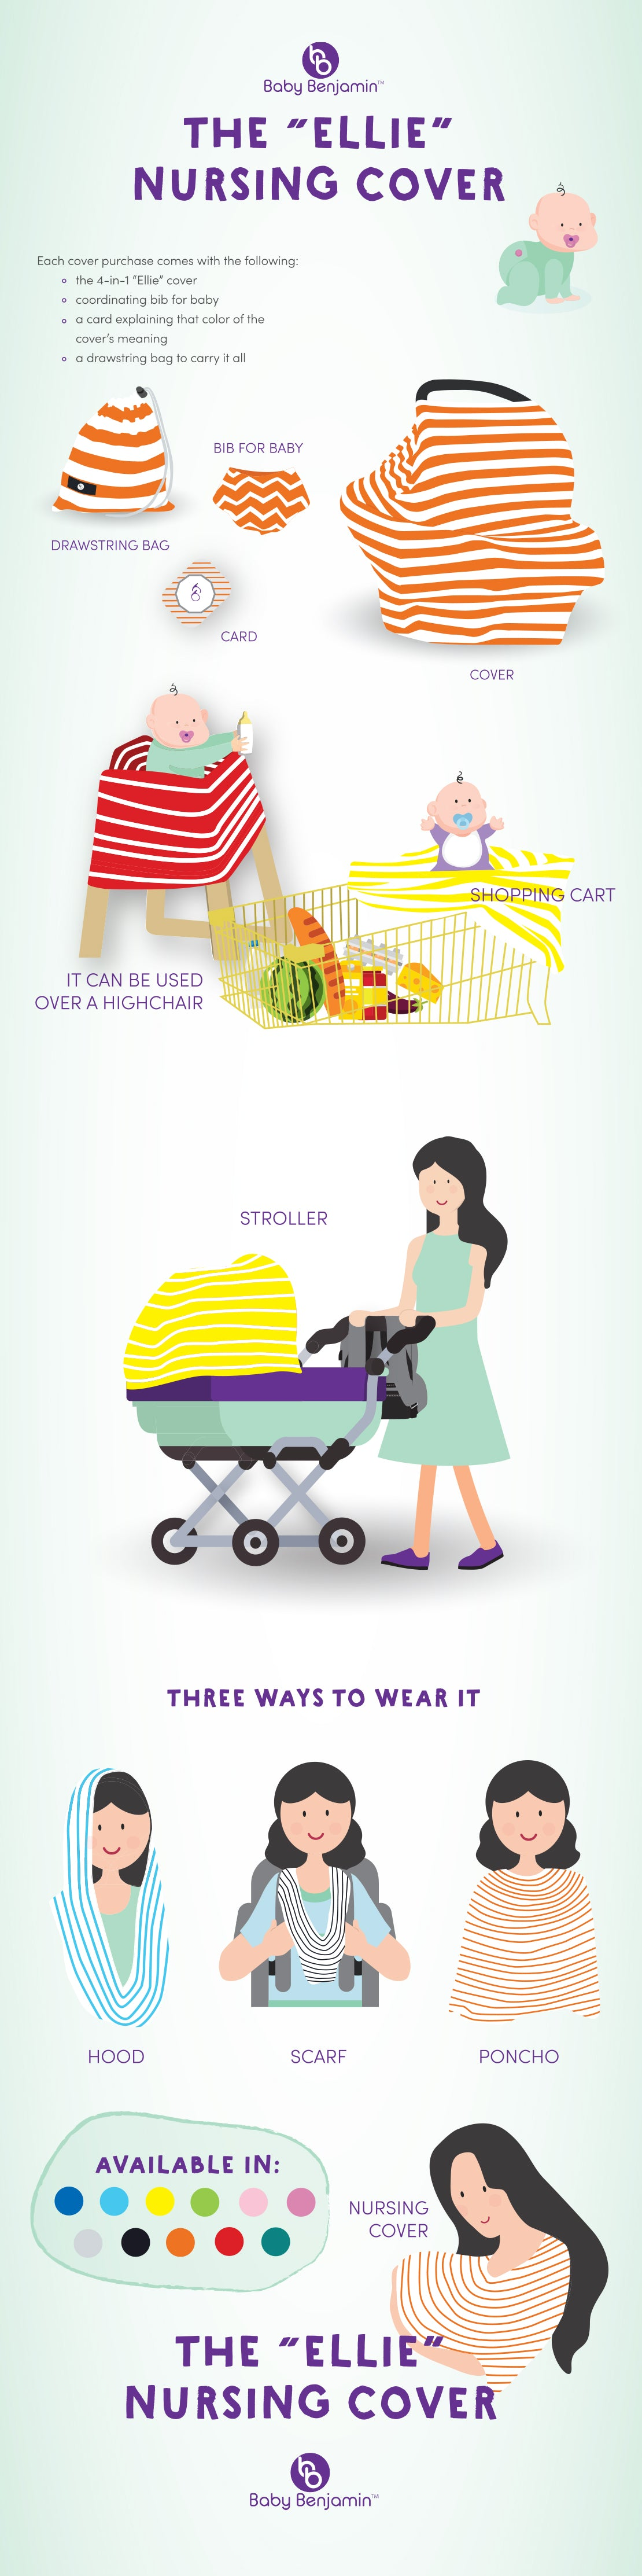 nursing cover infographic